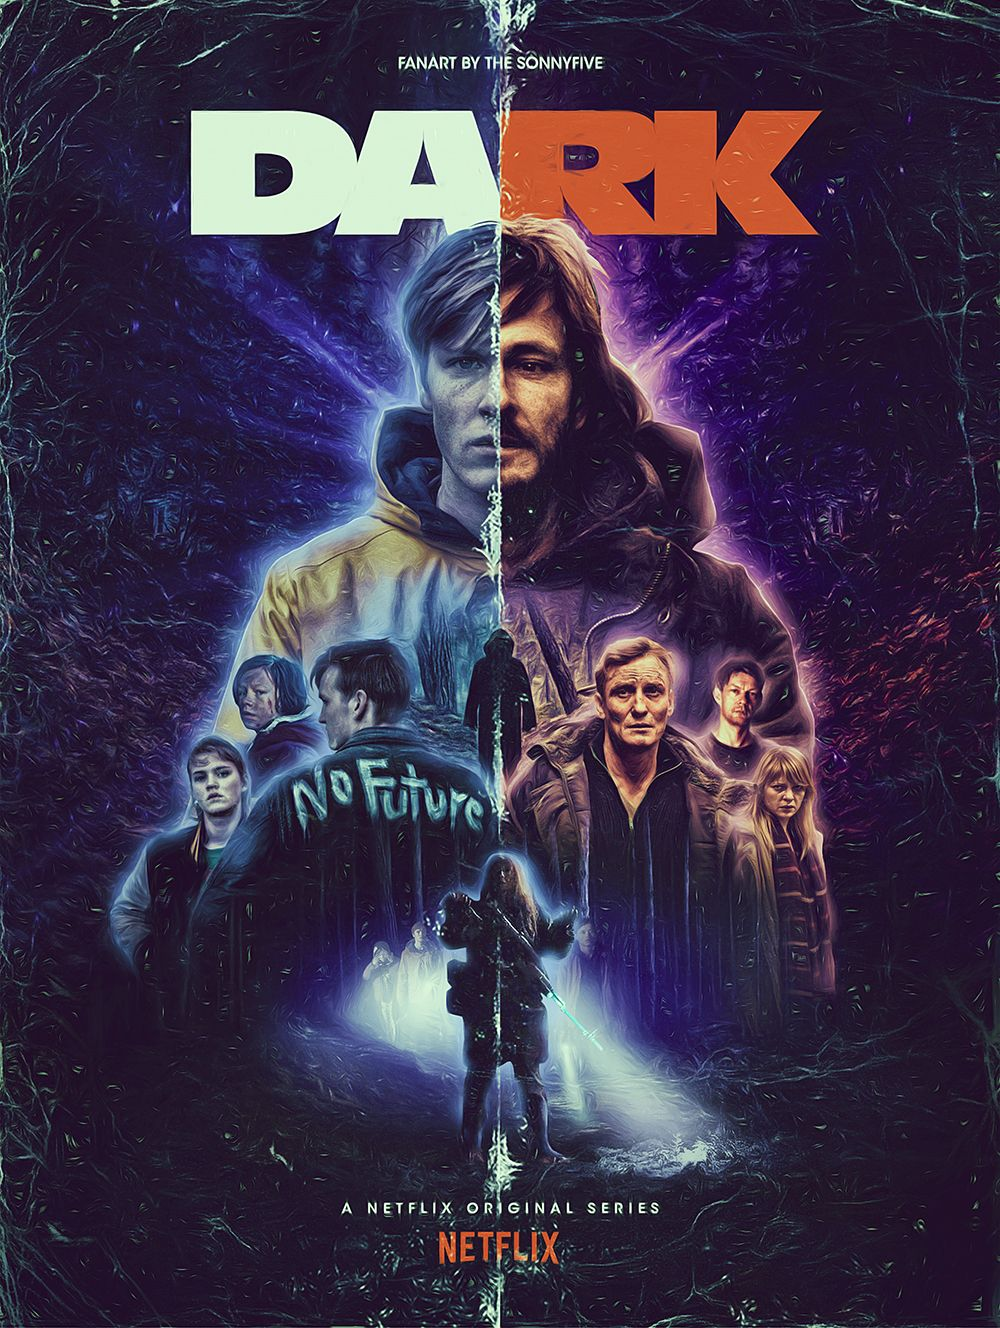 dark fanart poster by the sonnyfive dark netflix